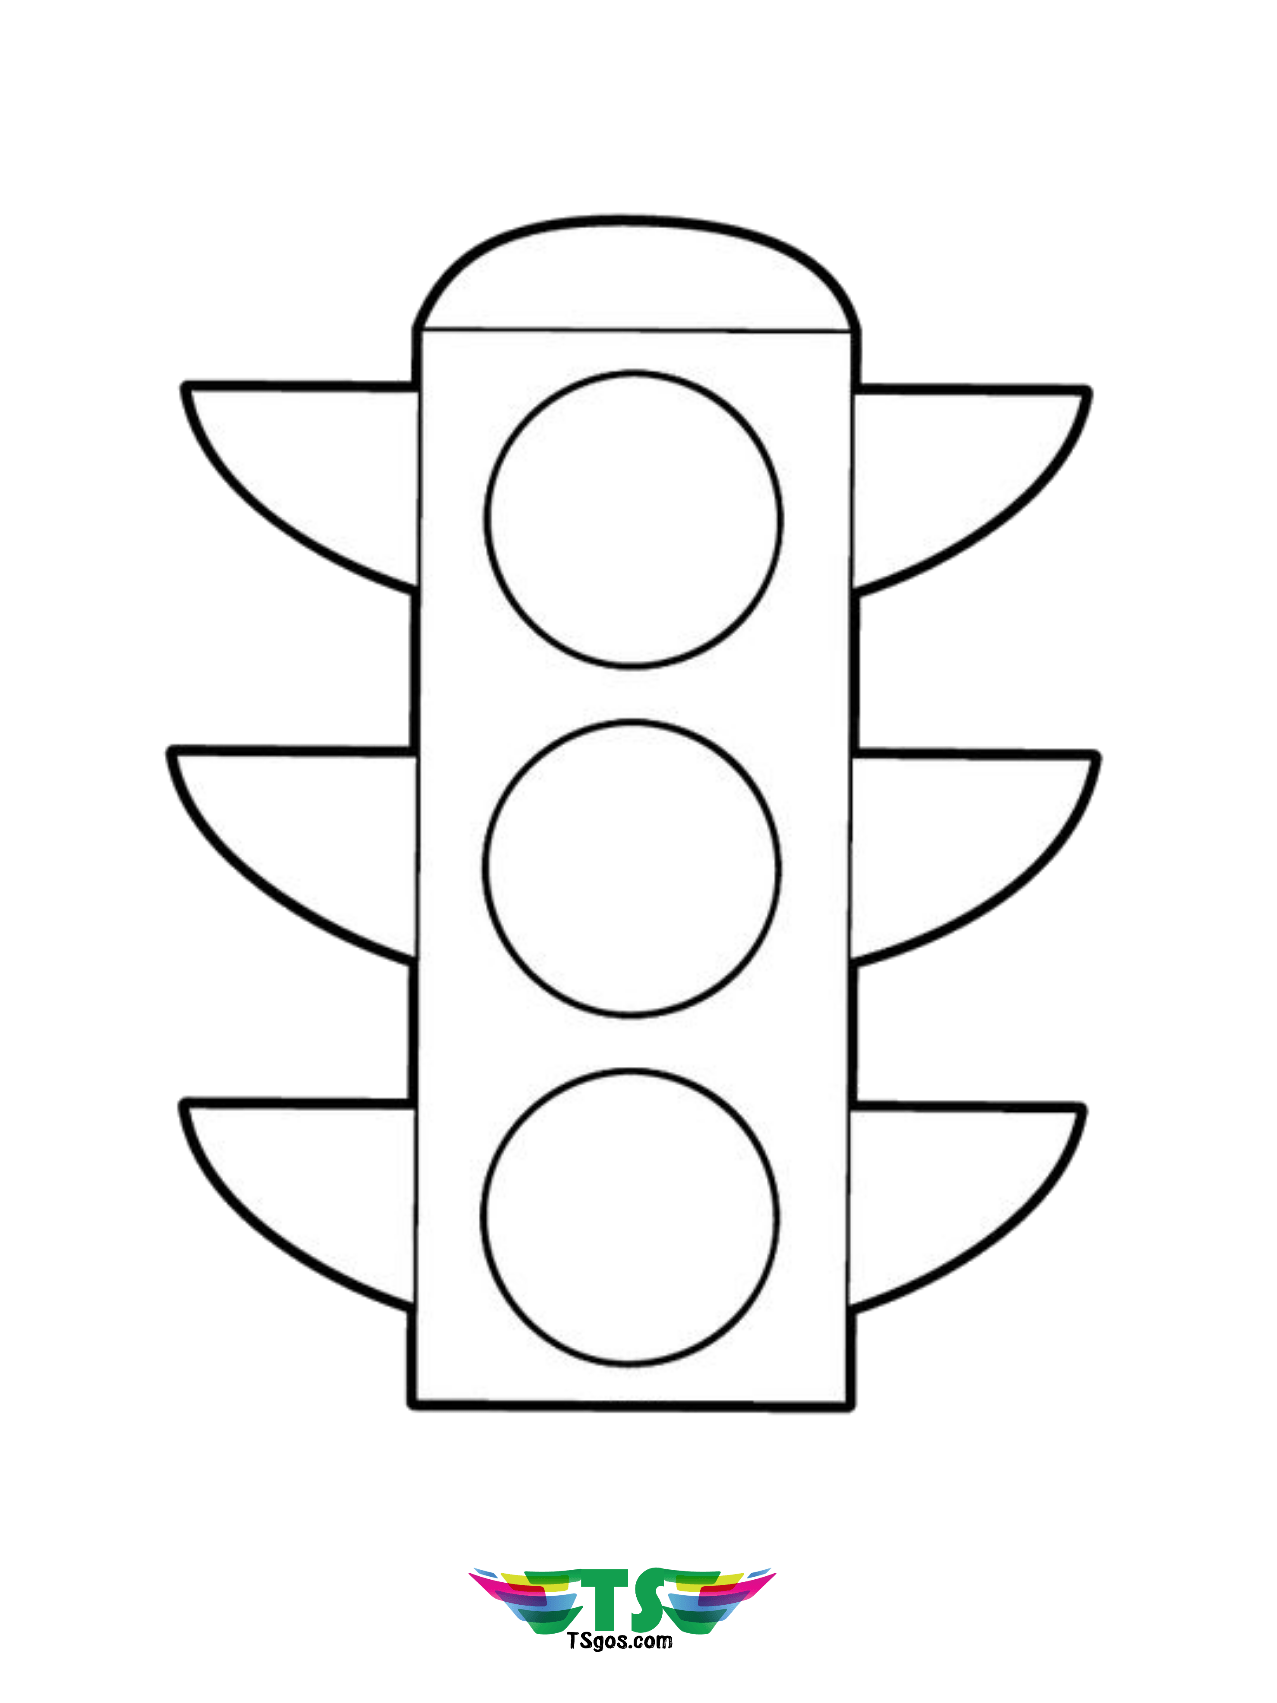 Traffic Light Coloring Page For Kindergarten